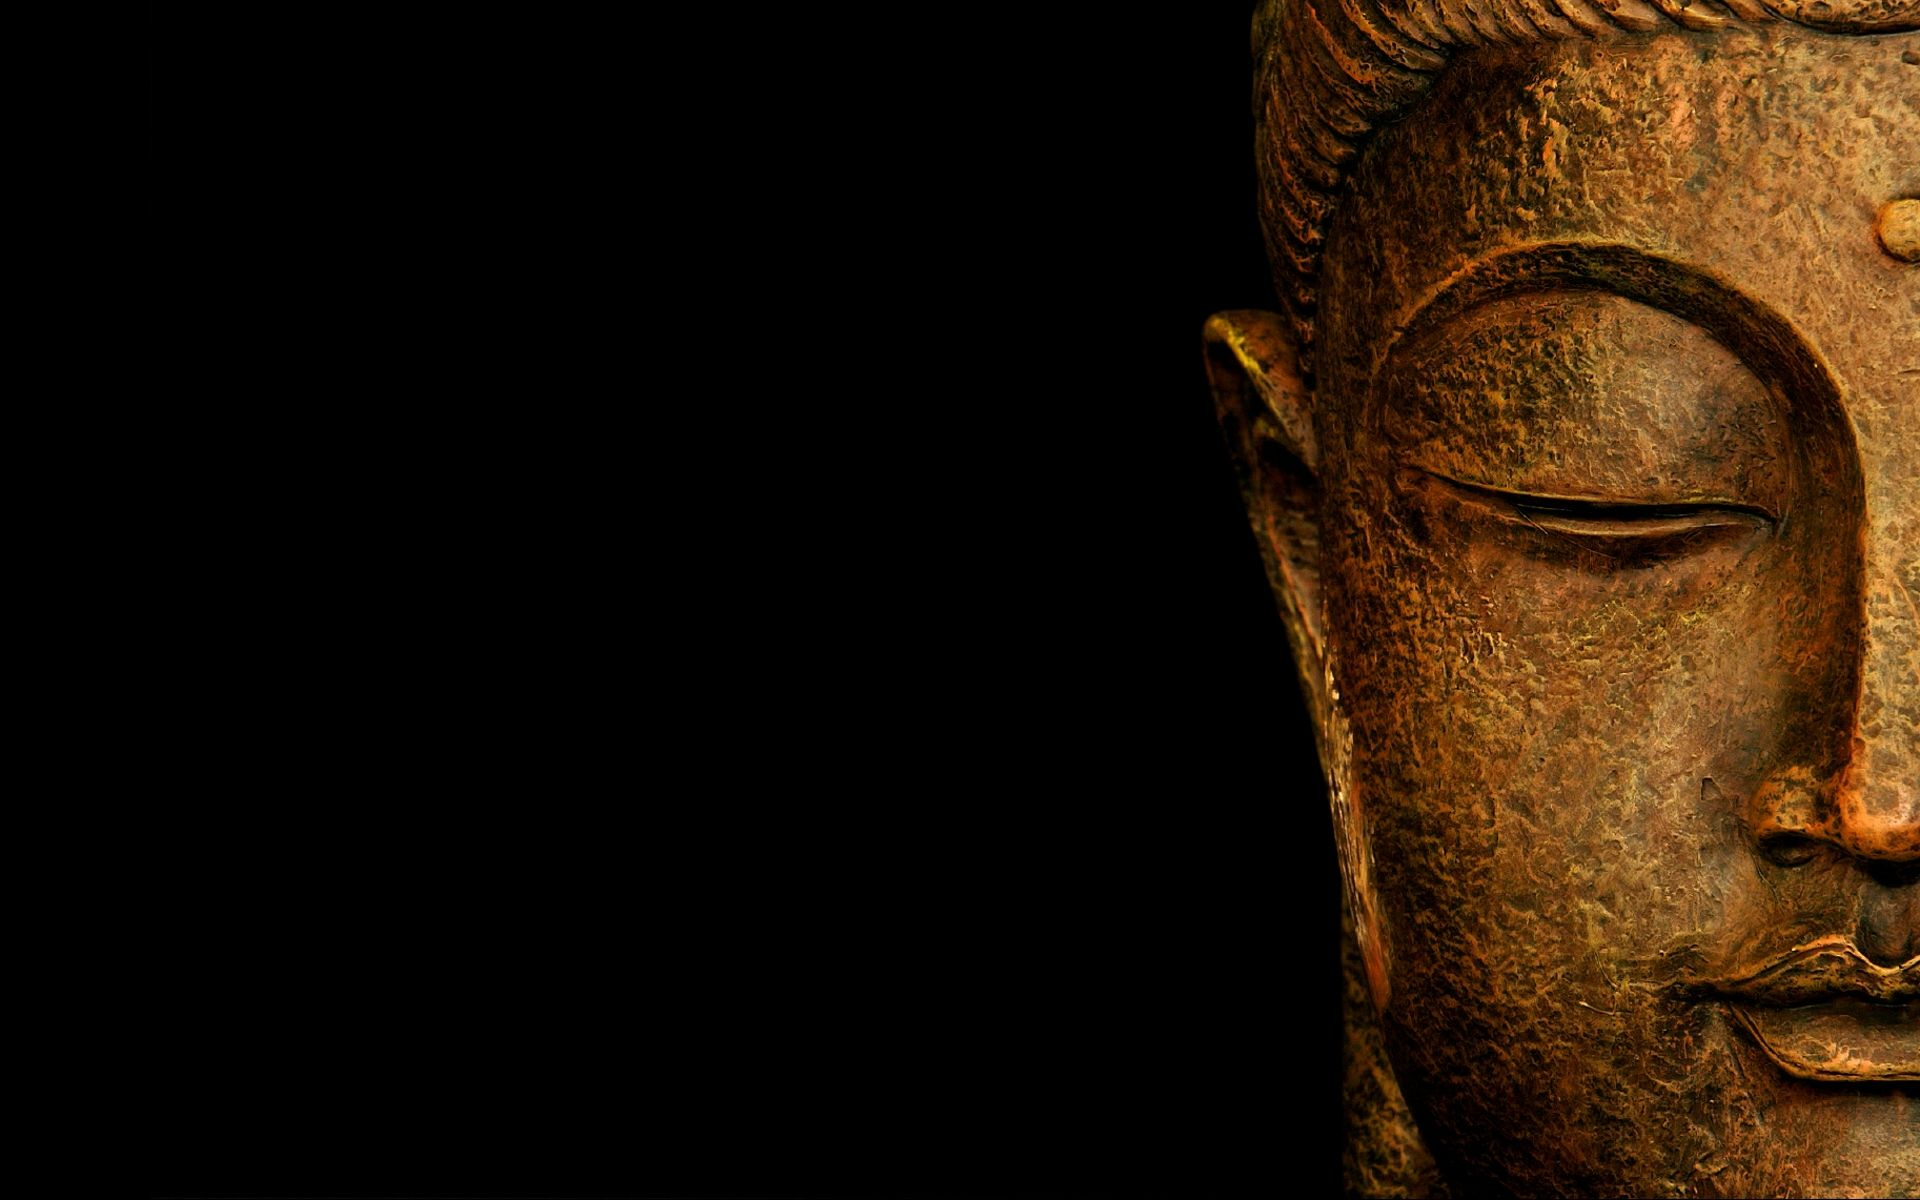 1920x1200 Best 50+【Buddha HD Wallpaper】| Download Background Images